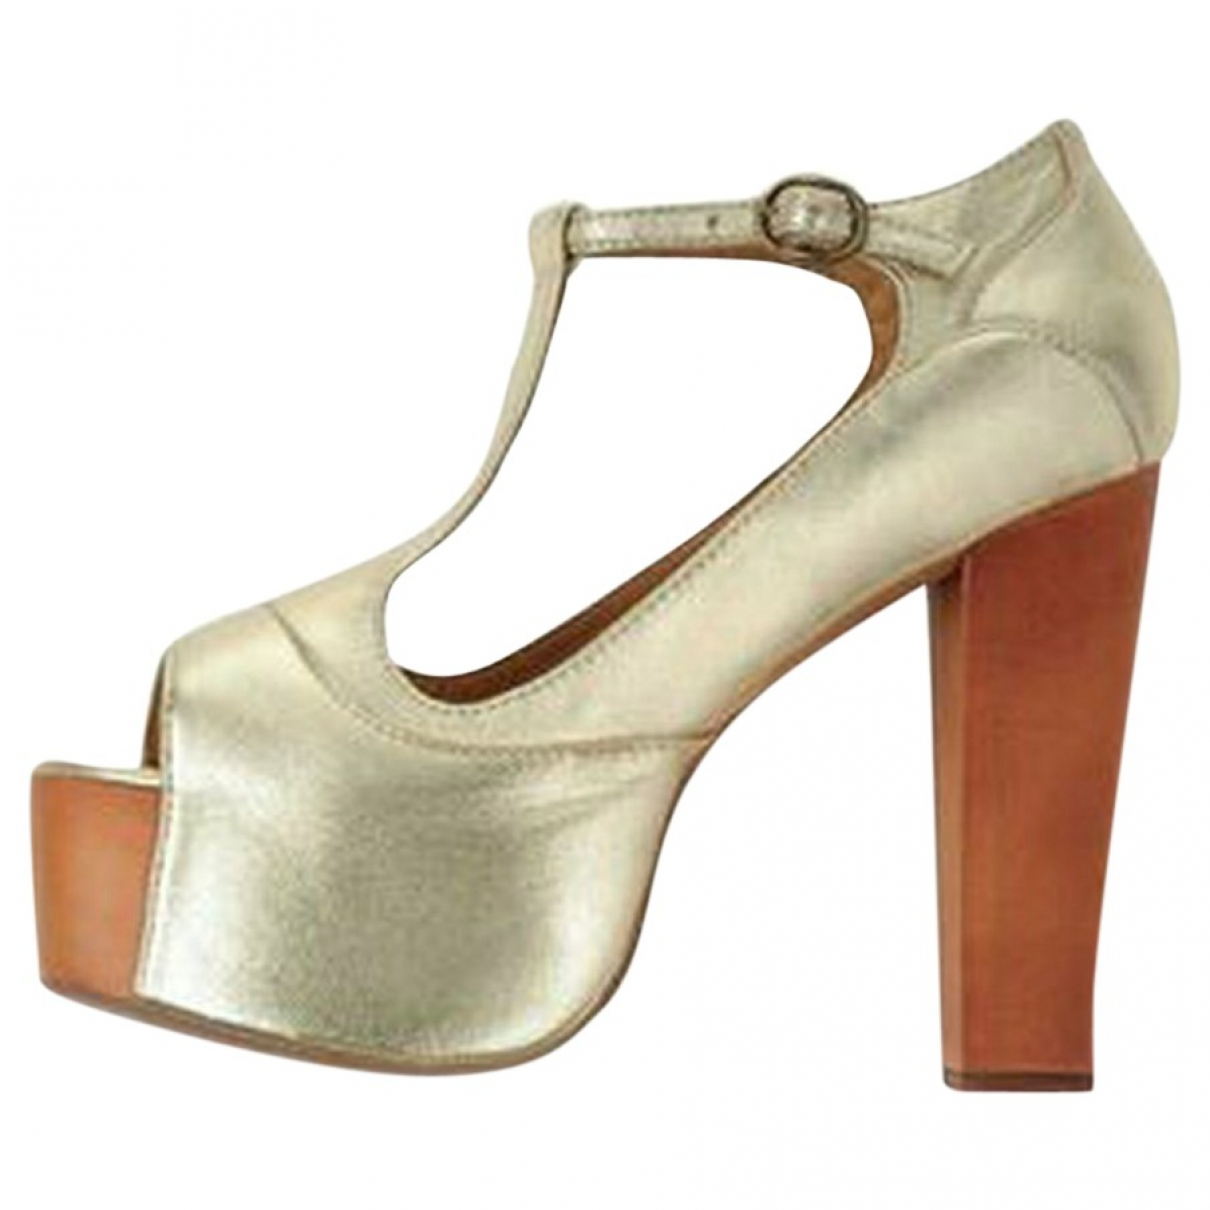 Jeffrey Campbell \N Gold Leather Heels for Women 38 EU